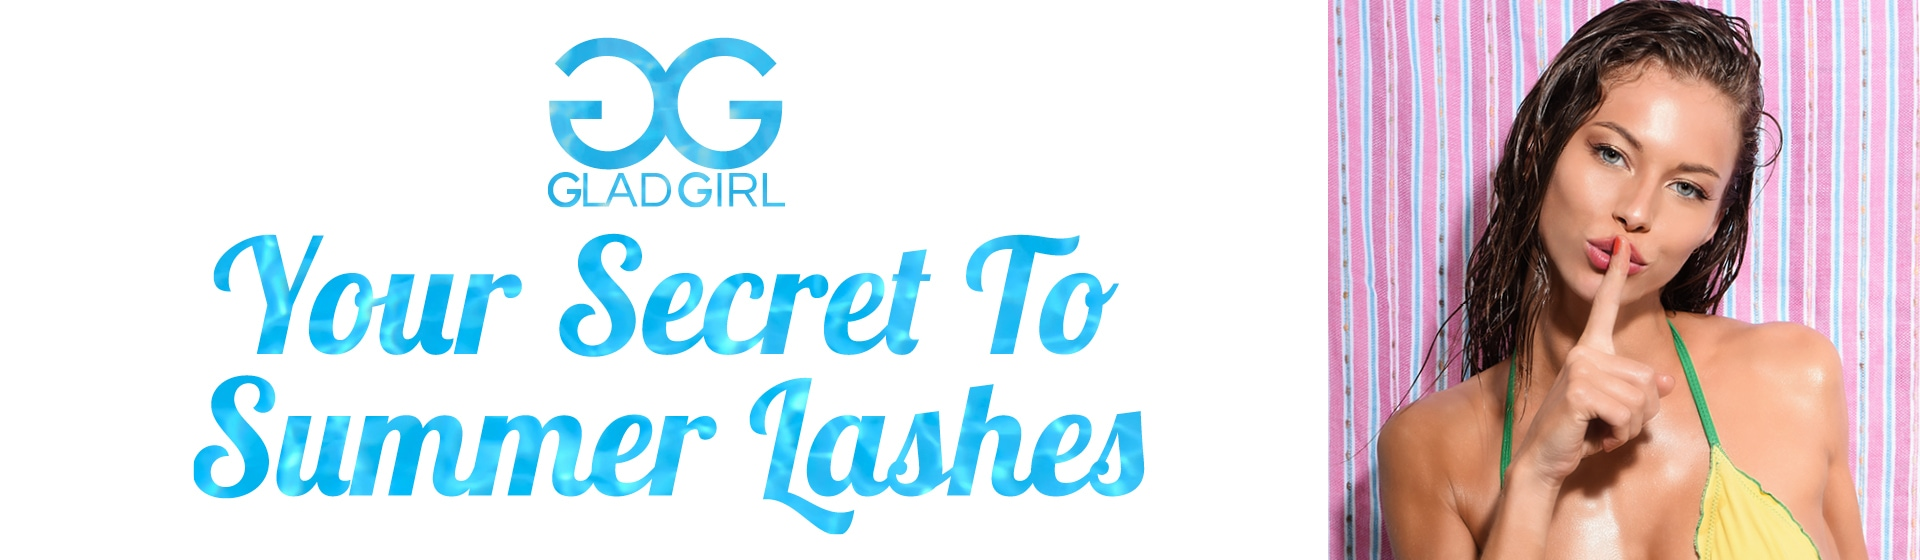 Your Secret to Summer Lashes